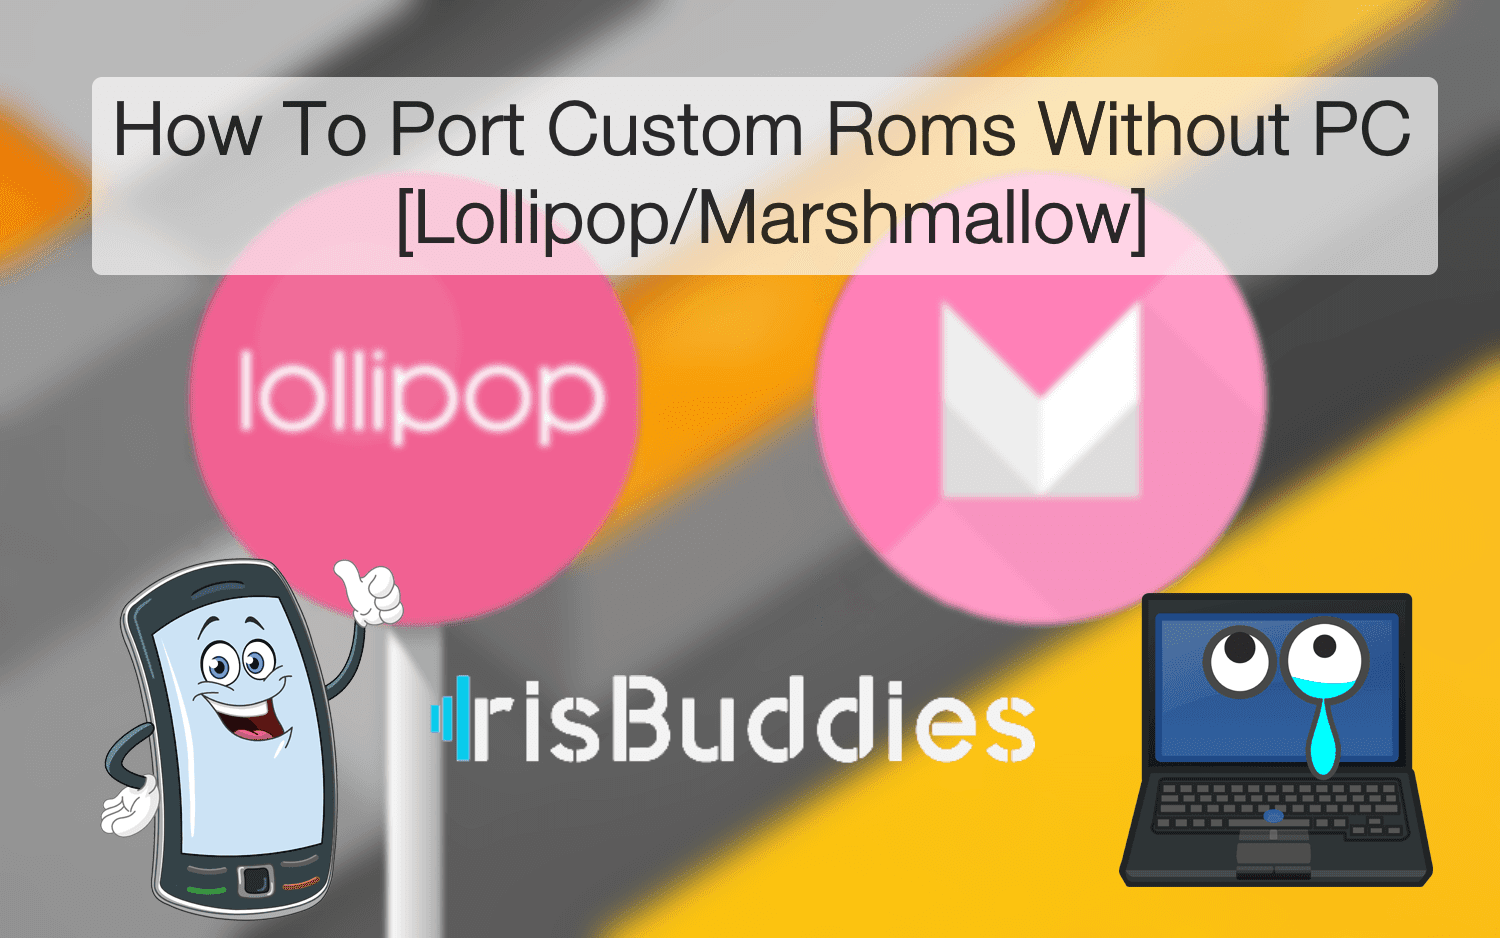 How To Port Custom Roms Without PC On Your Mobile [Lollipop